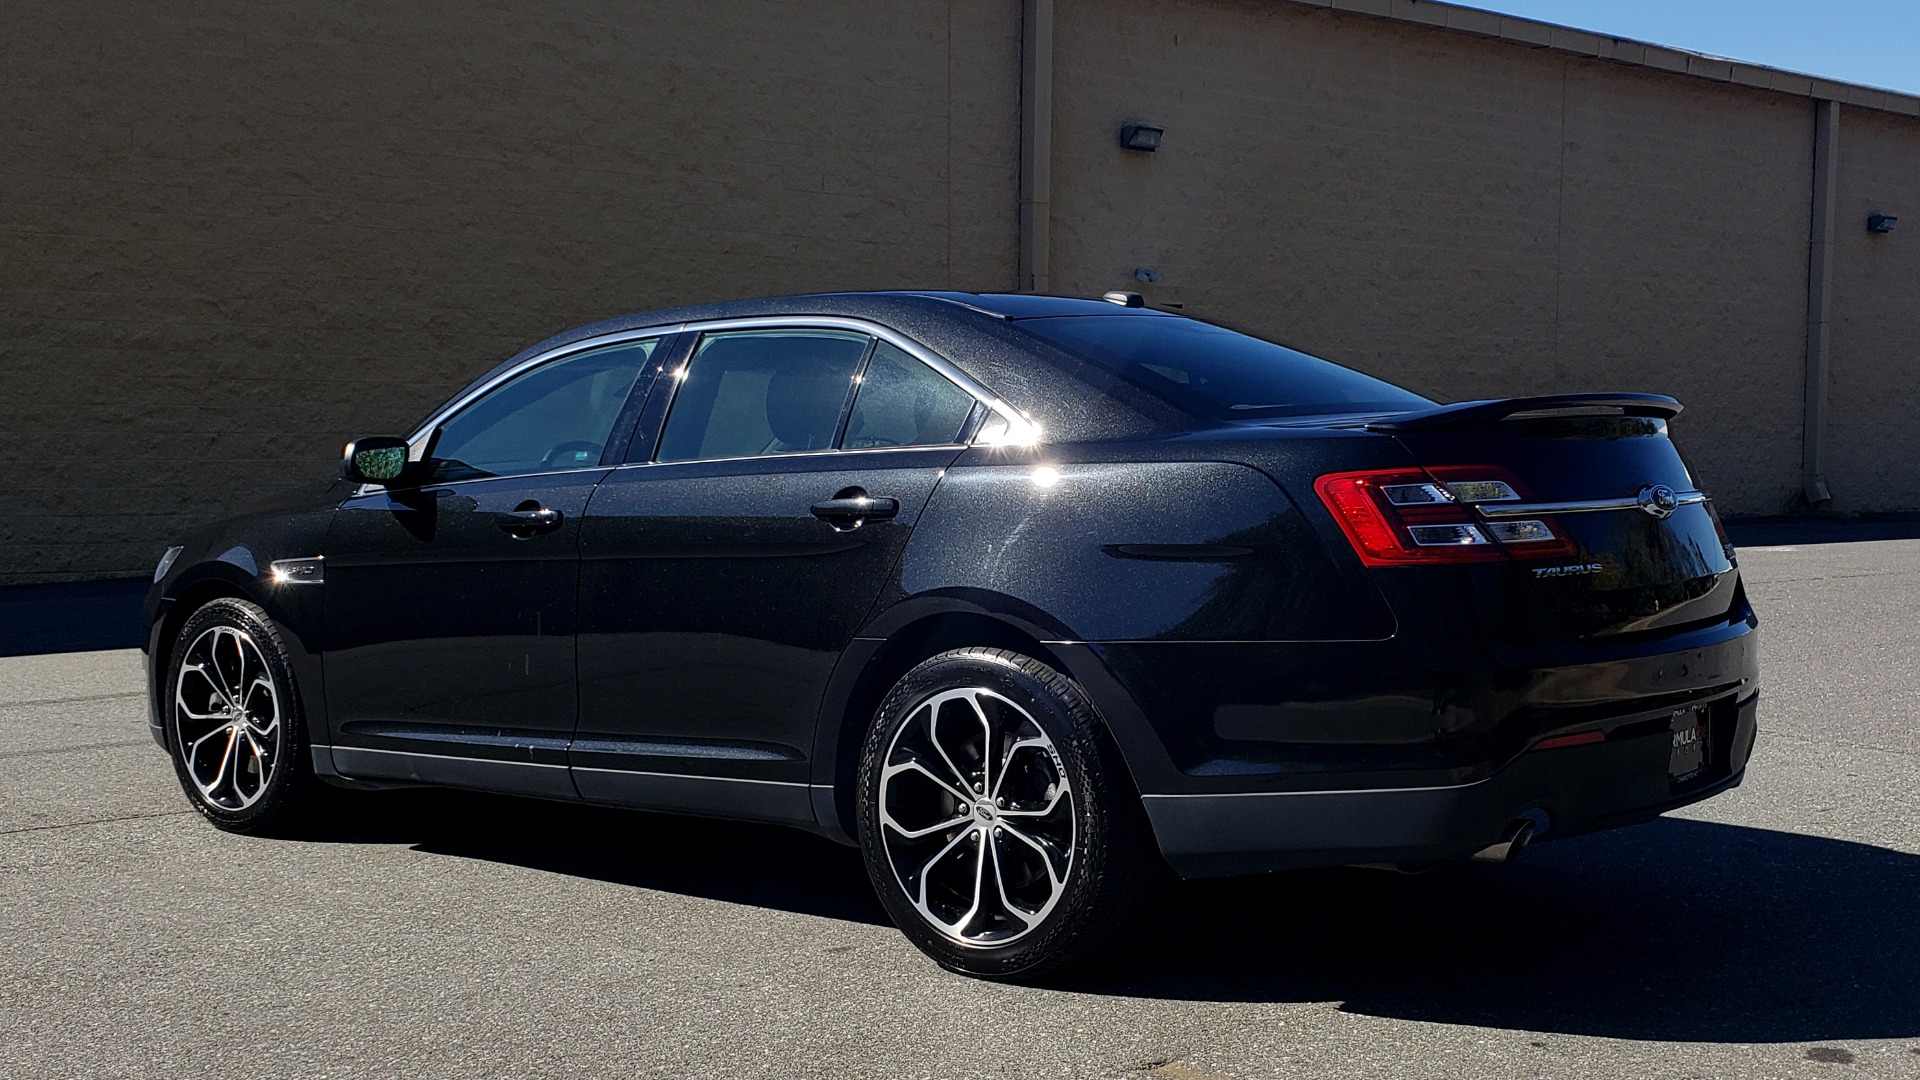 Used 2015 Ford TAURUS SHO 3.5L ECOBOOST V6 / NAV / SUNROOF / HTD STS / BSM / REARVIEW for sale Sold at Formula Imports in Charlotte NC 28227 4